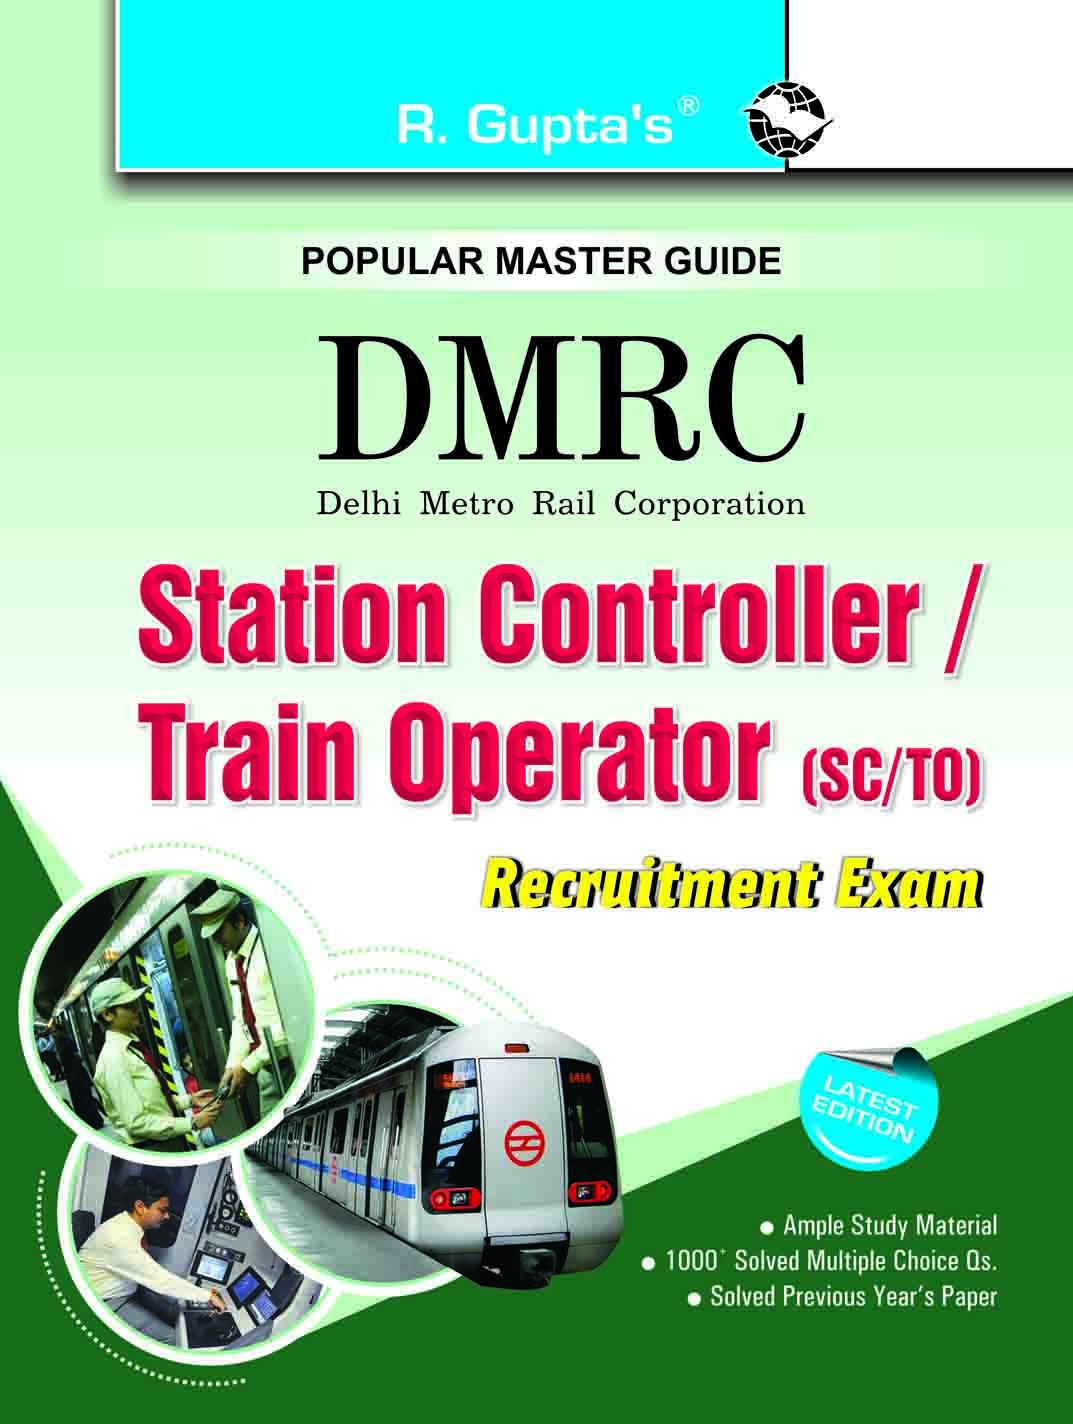 Buy DMRC: Station Controller/Train Operator (SC/TO) Recruitment Exam Guide  Book Online at Low Prices in India | DMRC: Station Controller/Train  Operator ...